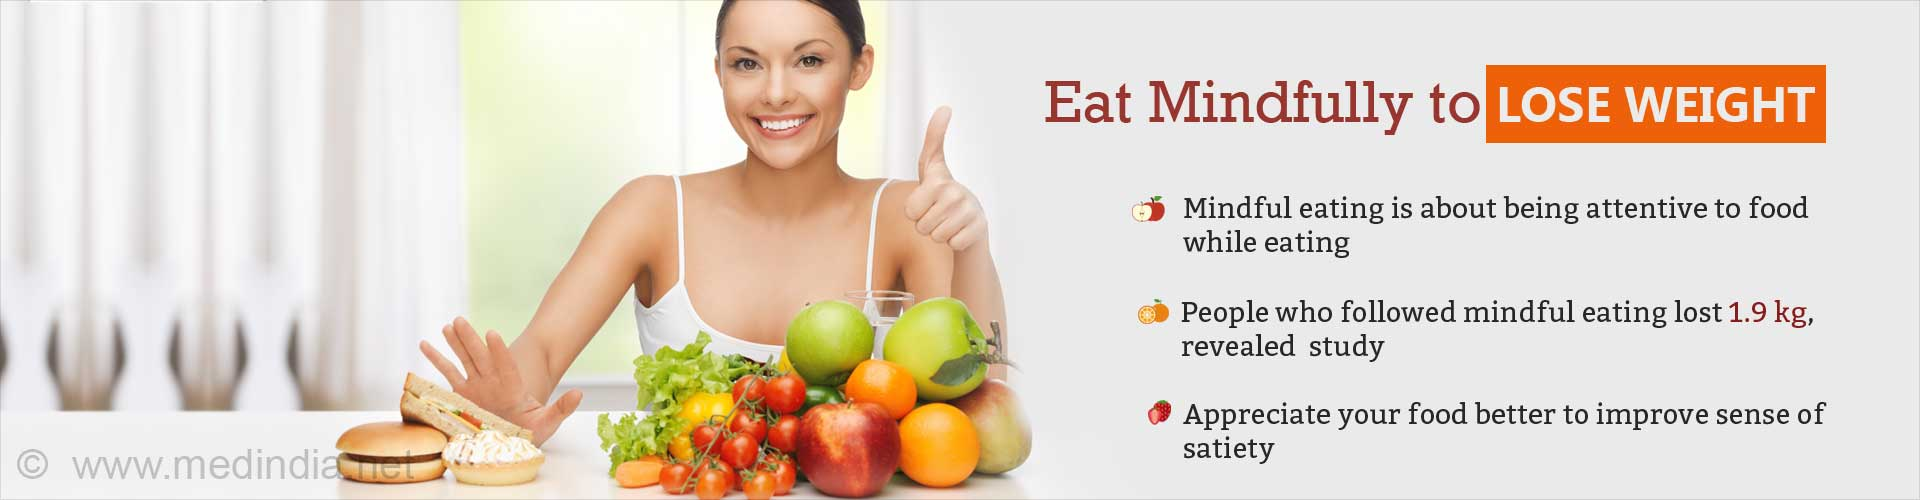 Eat Mindfully, Savor Your Food, Boost Weight Loss